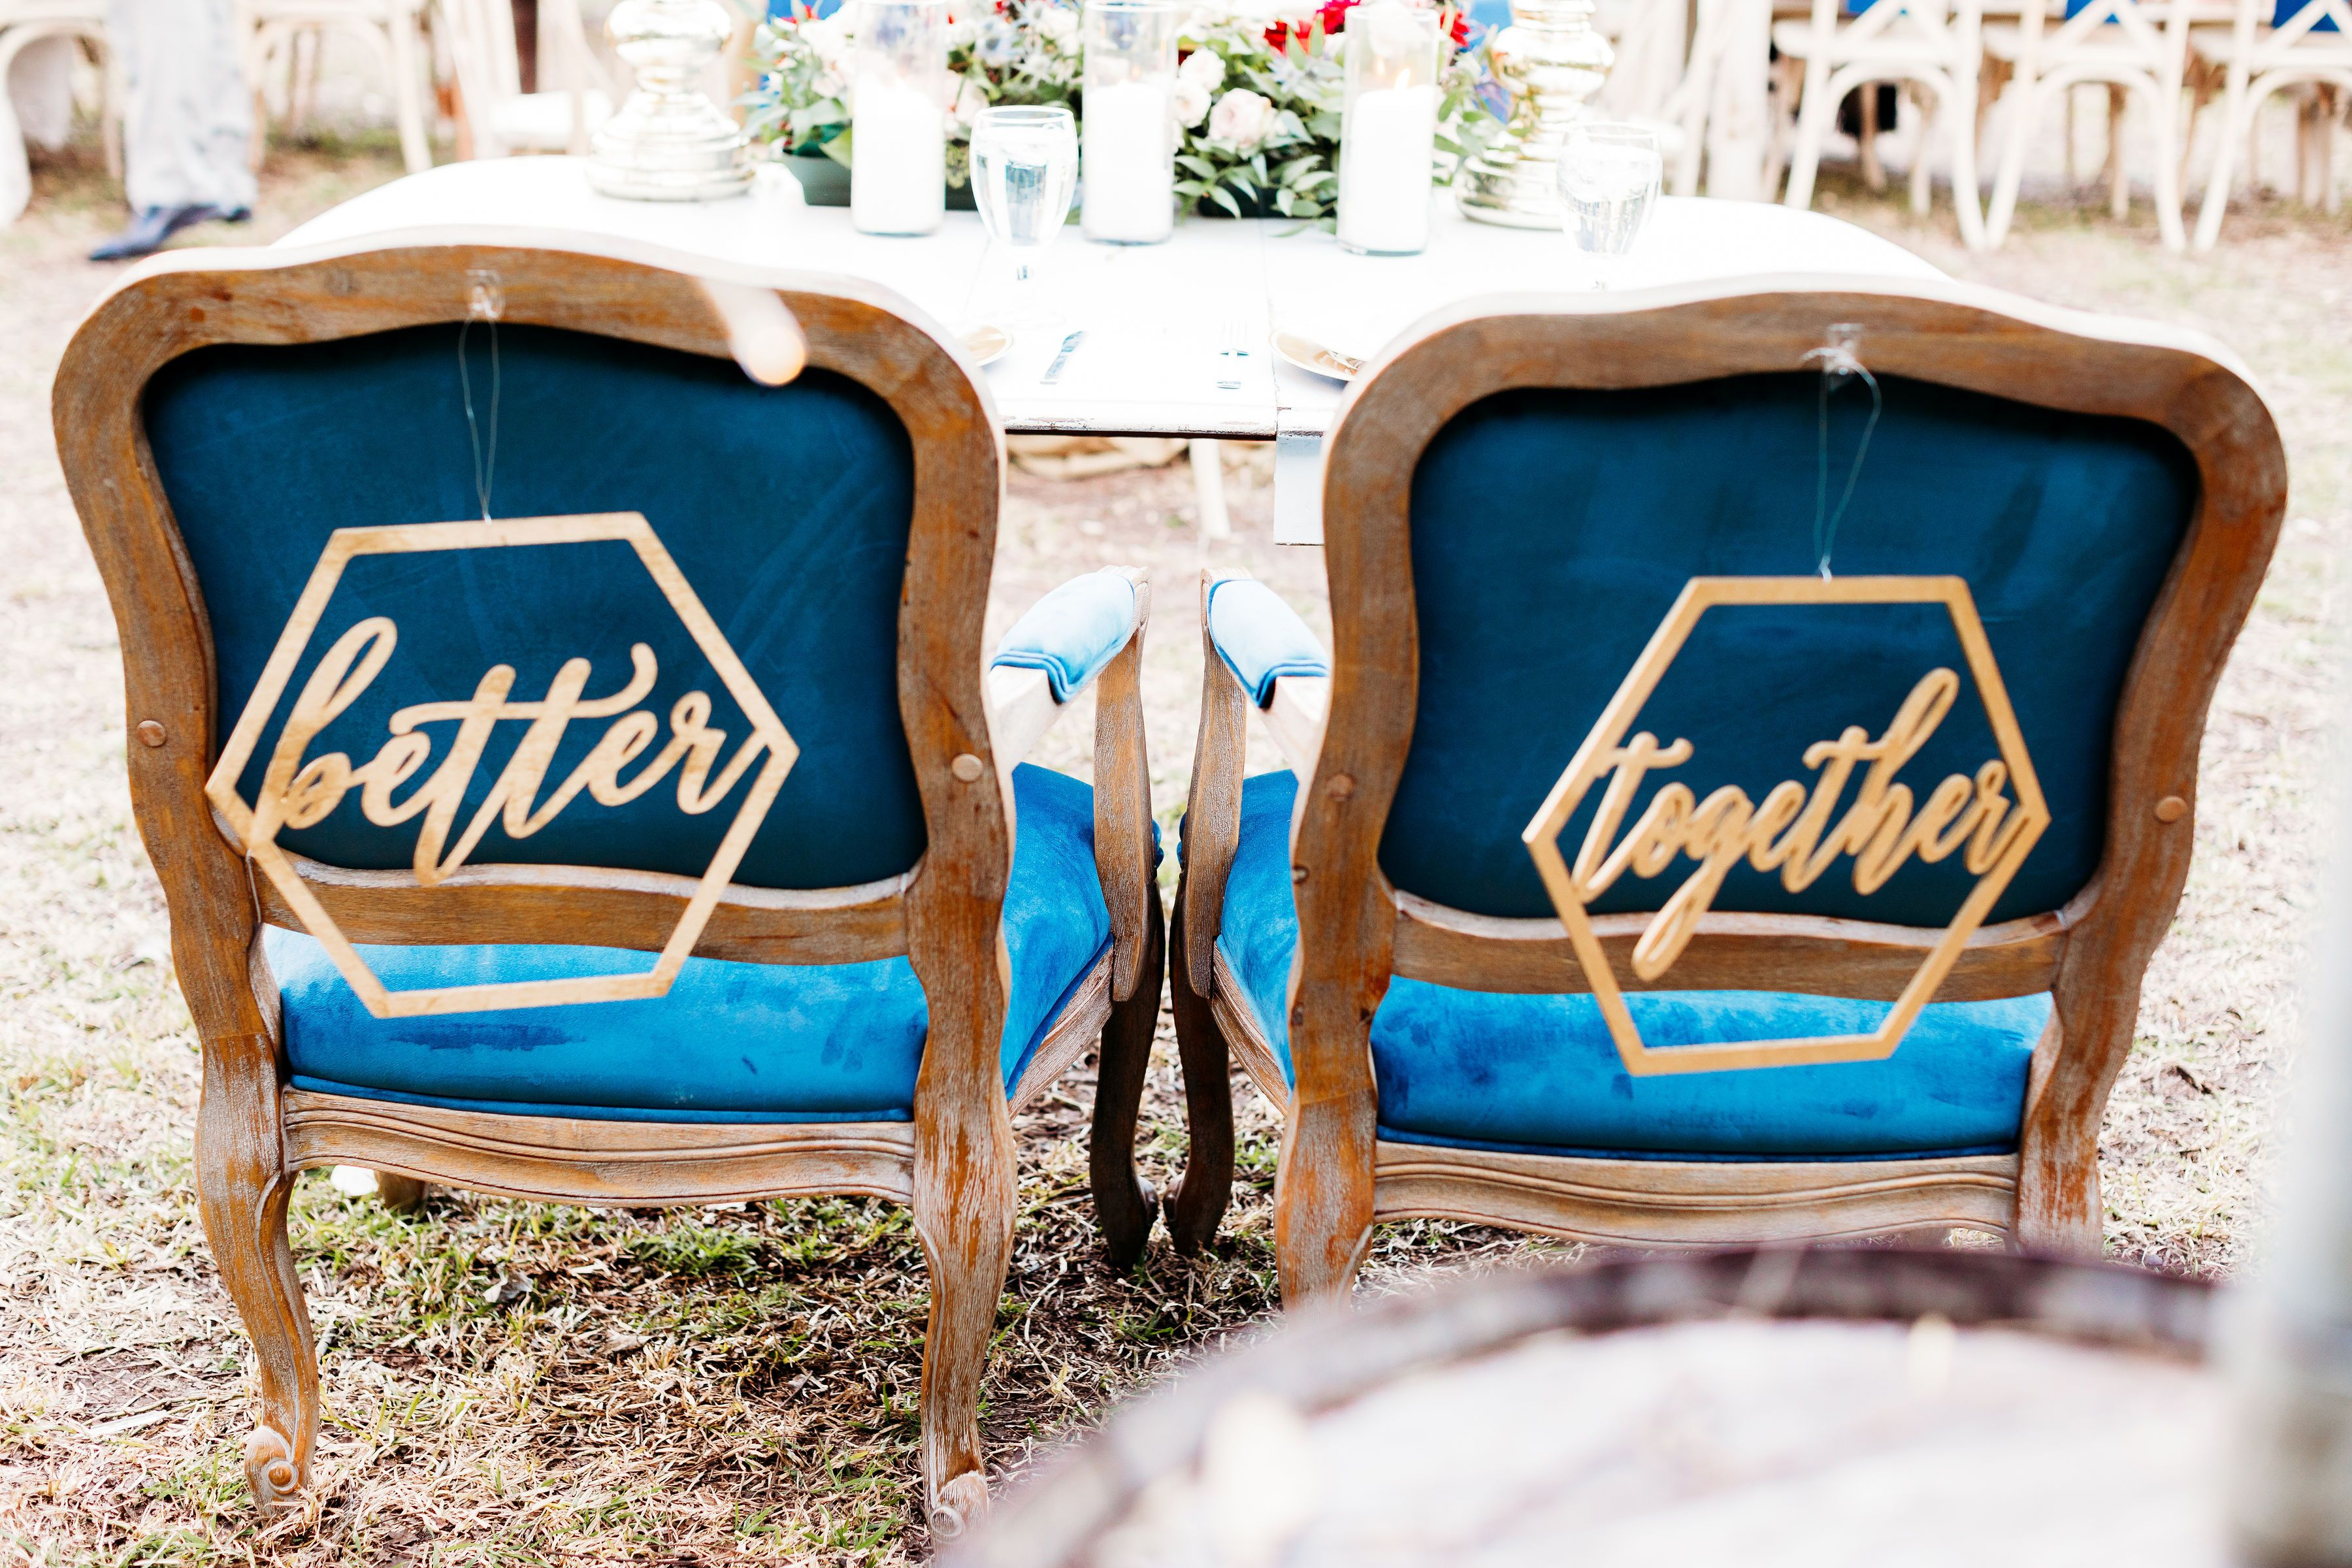 These chairs for the sweetheart table are